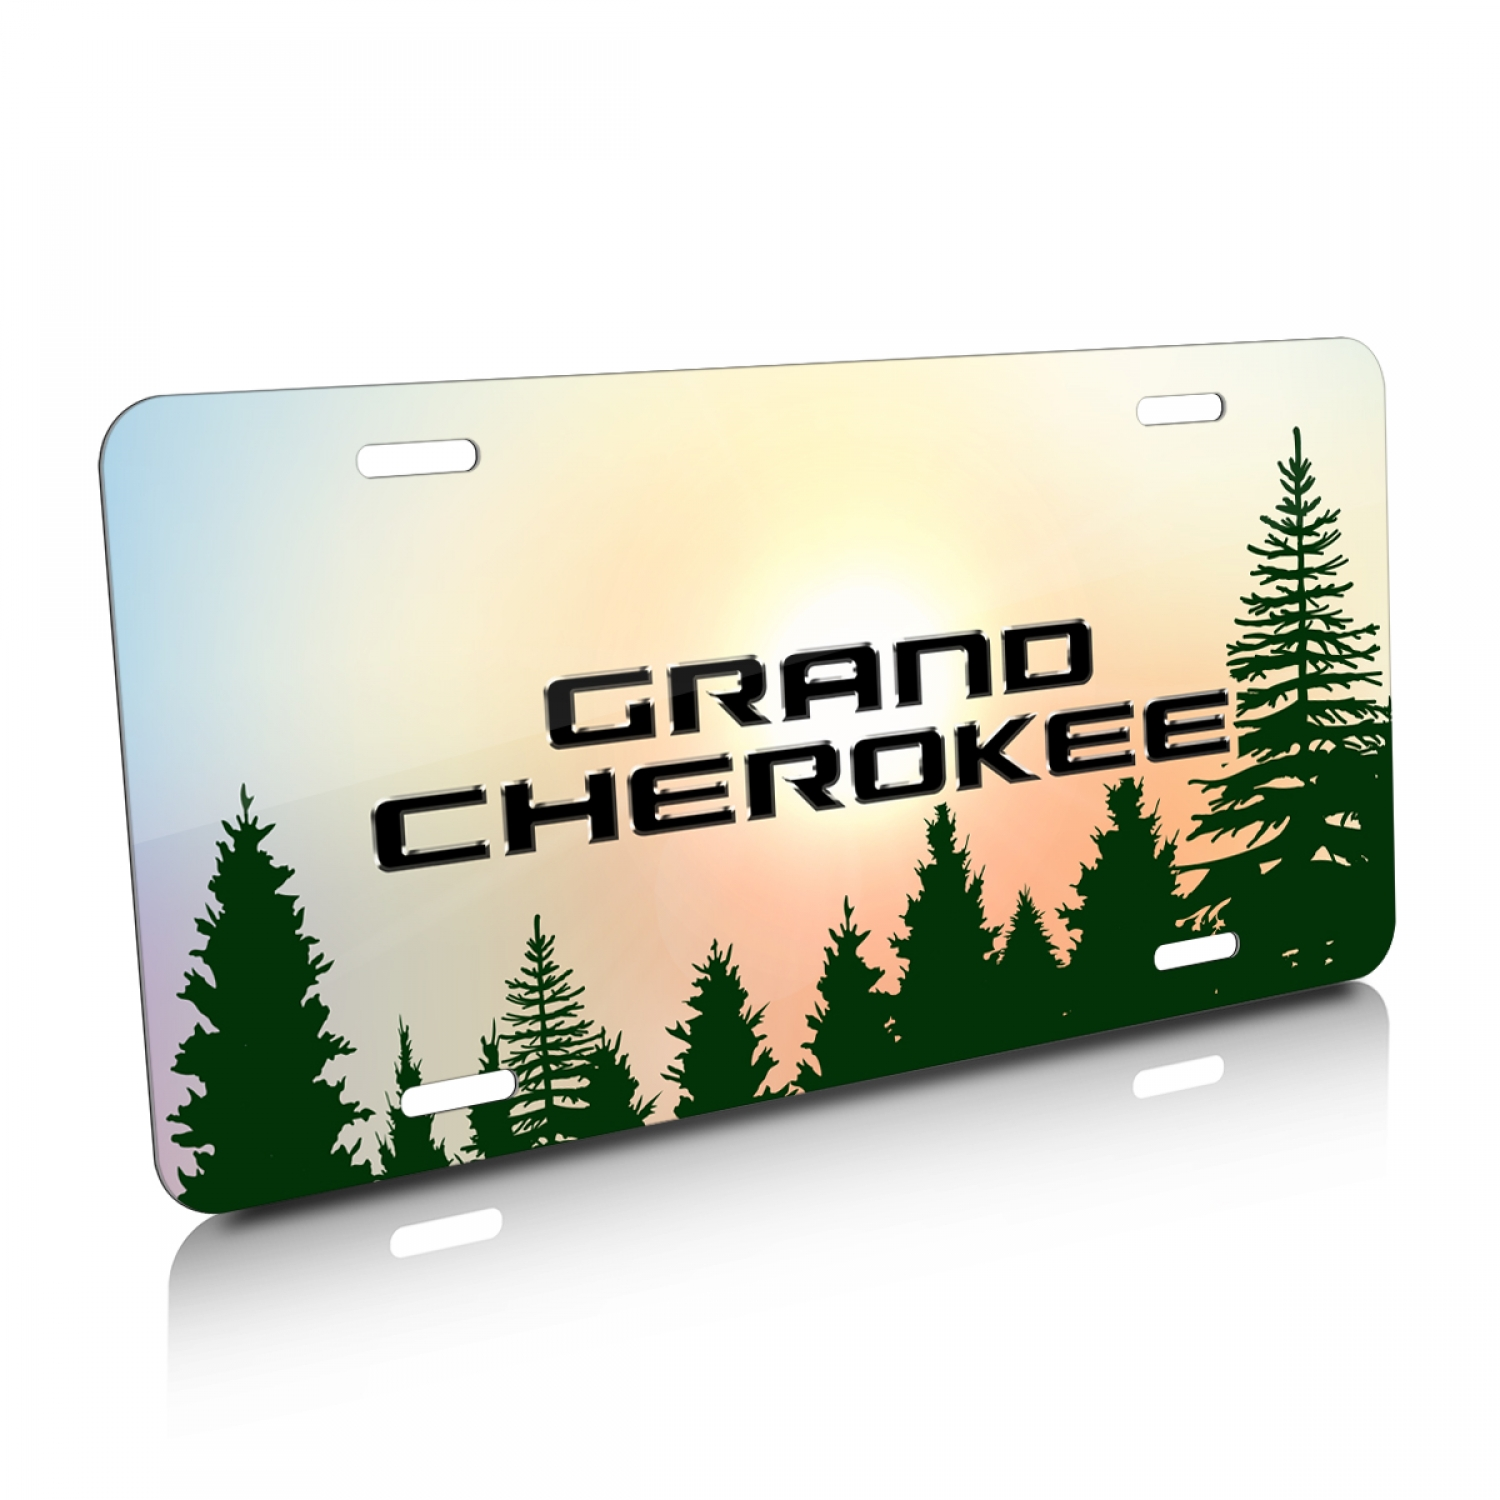 Jeep Grand Cherokee Green Forrest Sillhouette Graphic Aluminum License Plate